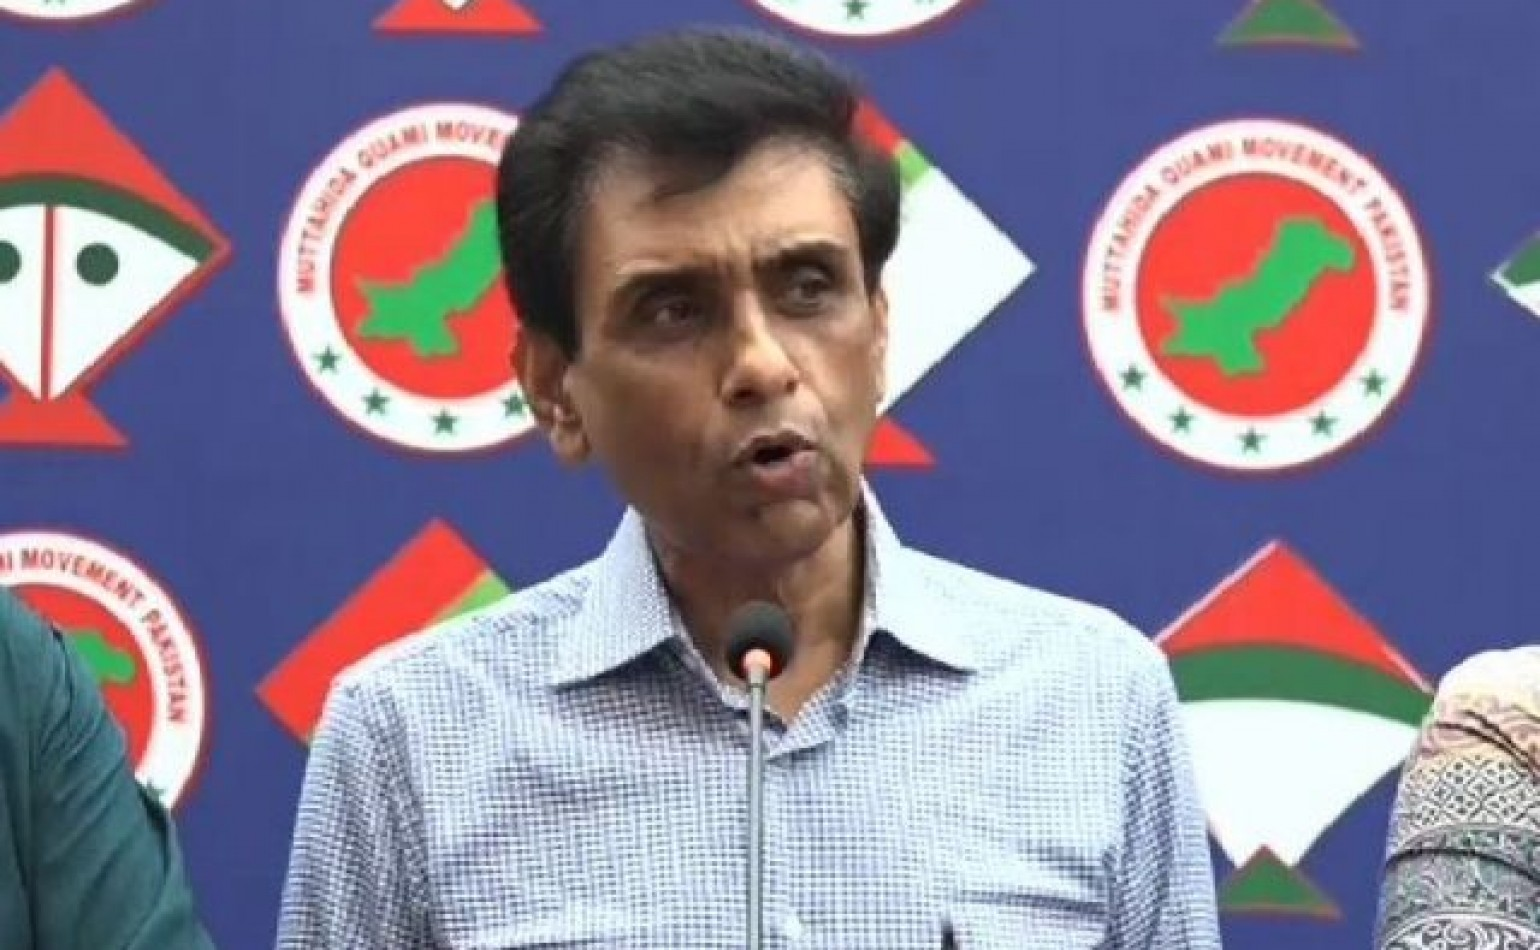 An Open-letter to the Minister IT Khalid Maqbool Siddiqui: Welcome to the Ministry, Sir. Various Challenges Await!